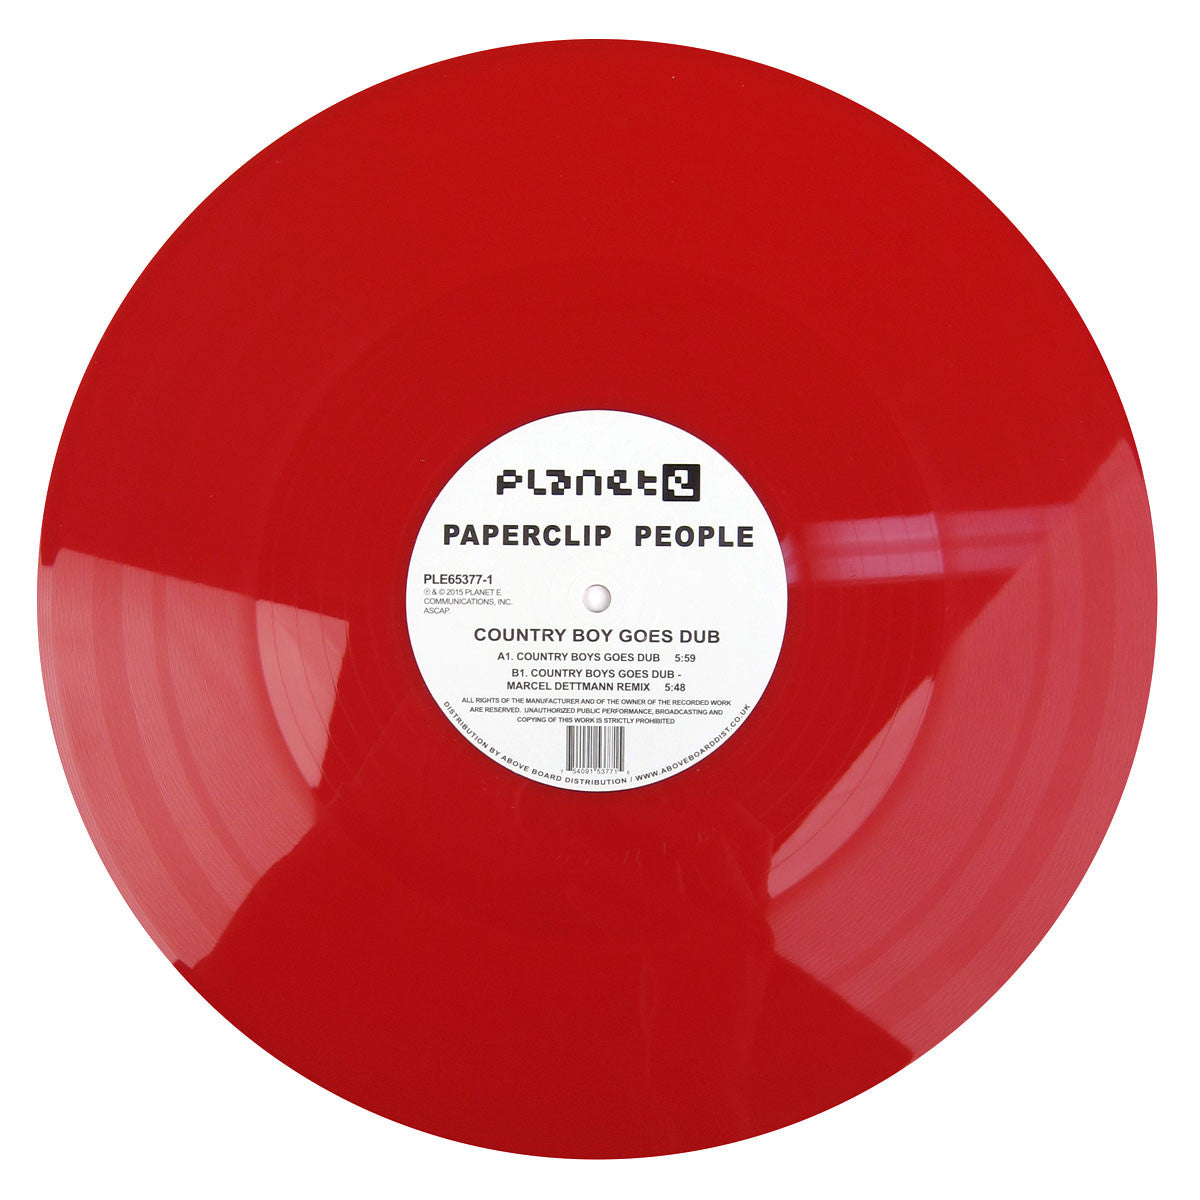 Paperclip People: Country Boy Goes Dub (Carl Craig, Colored Vinyl) Vinyl 12""